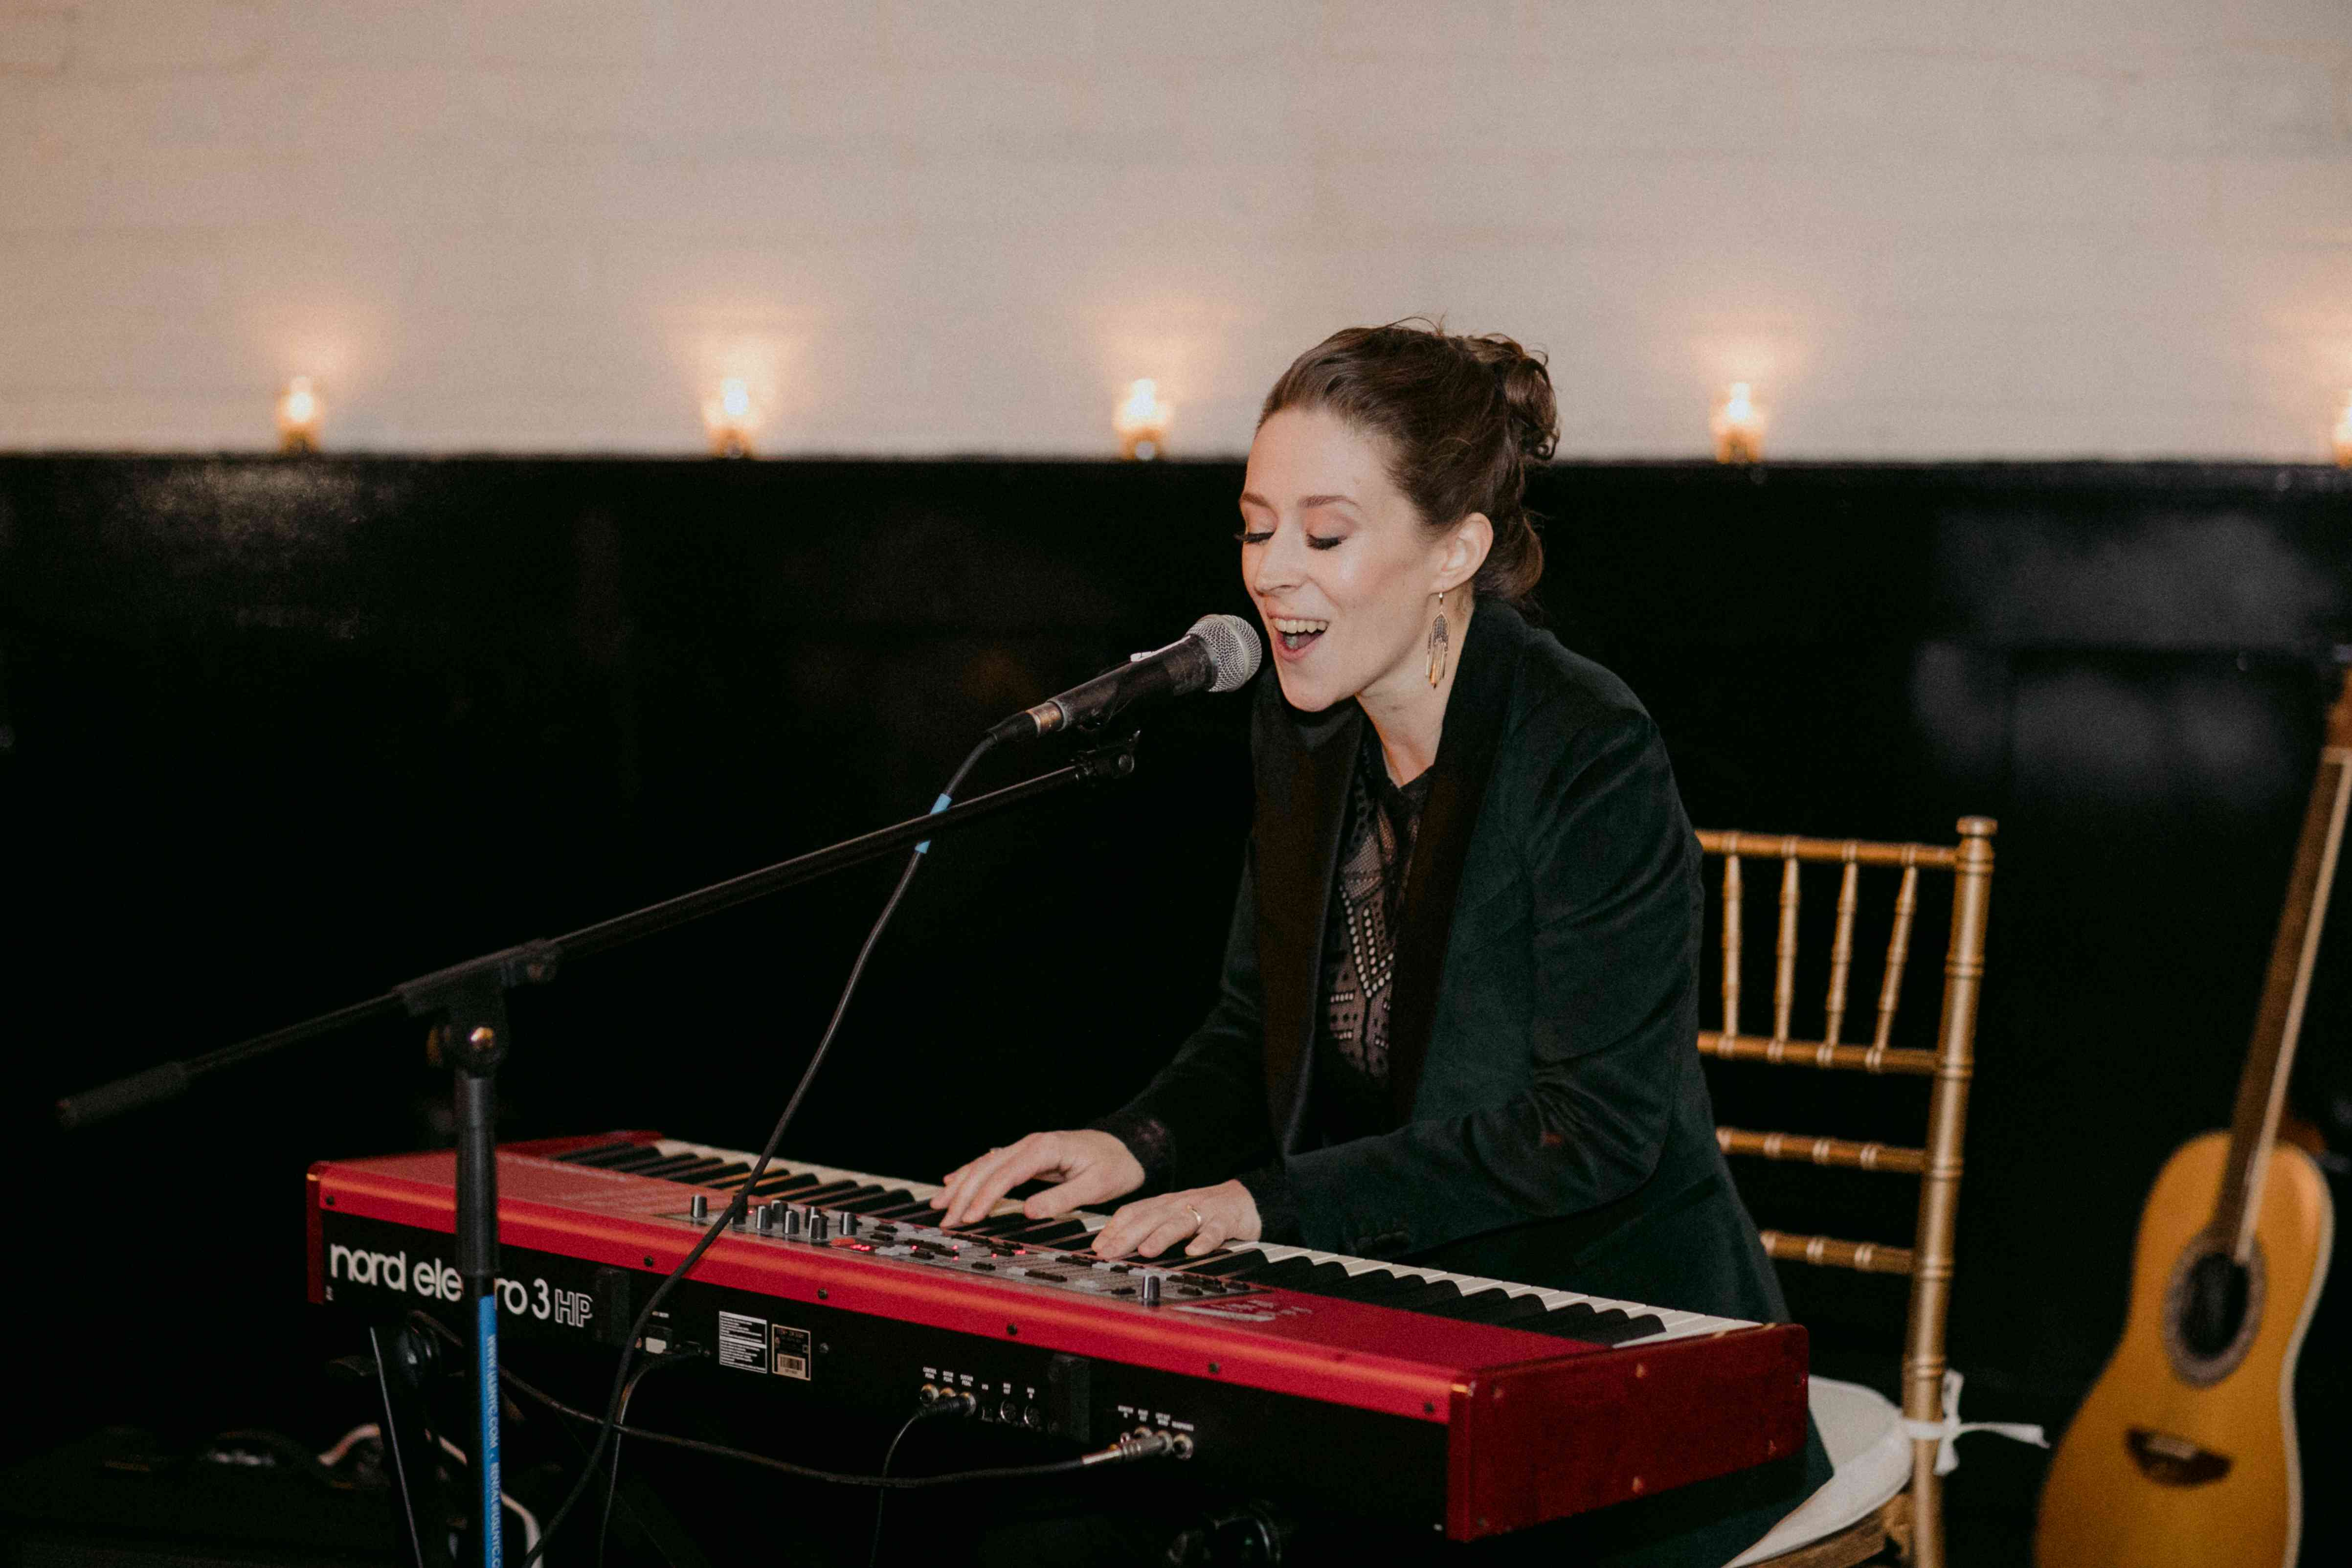 Katie performs a song on the keyboard